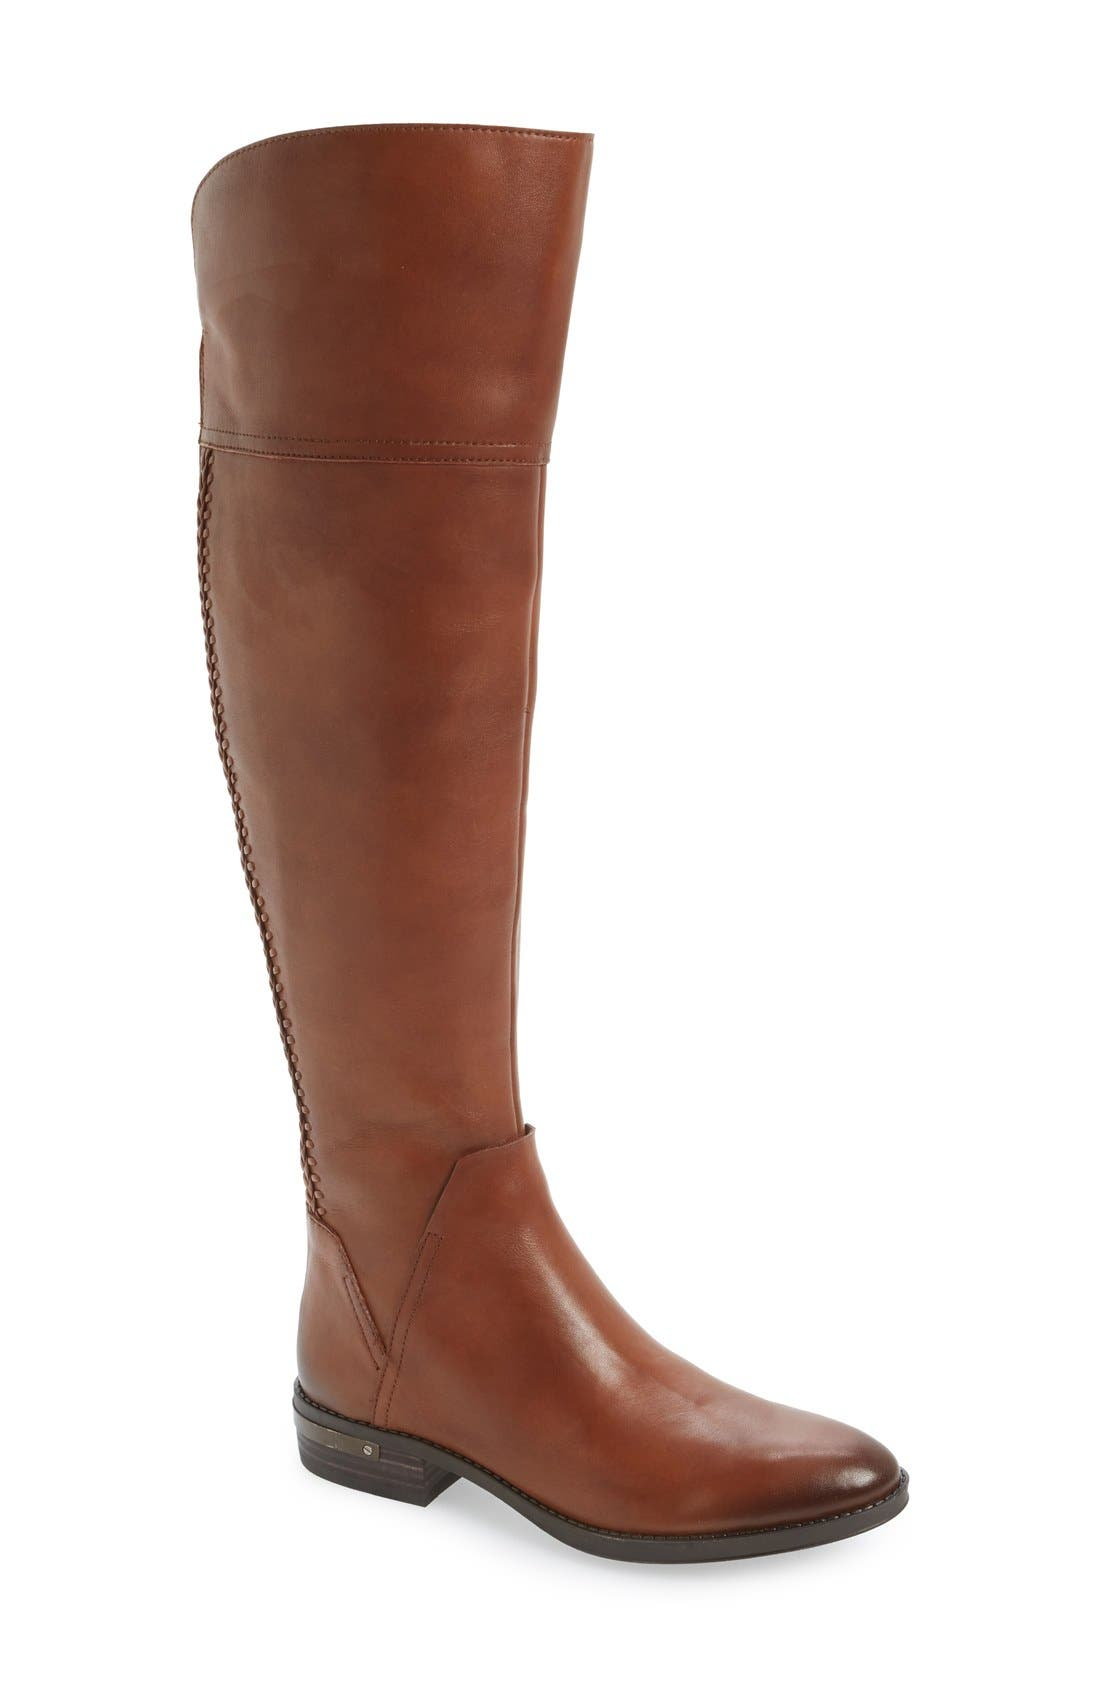 Main Image - Vince Camuto 'Pedra' Over the Knee Boot (Women)